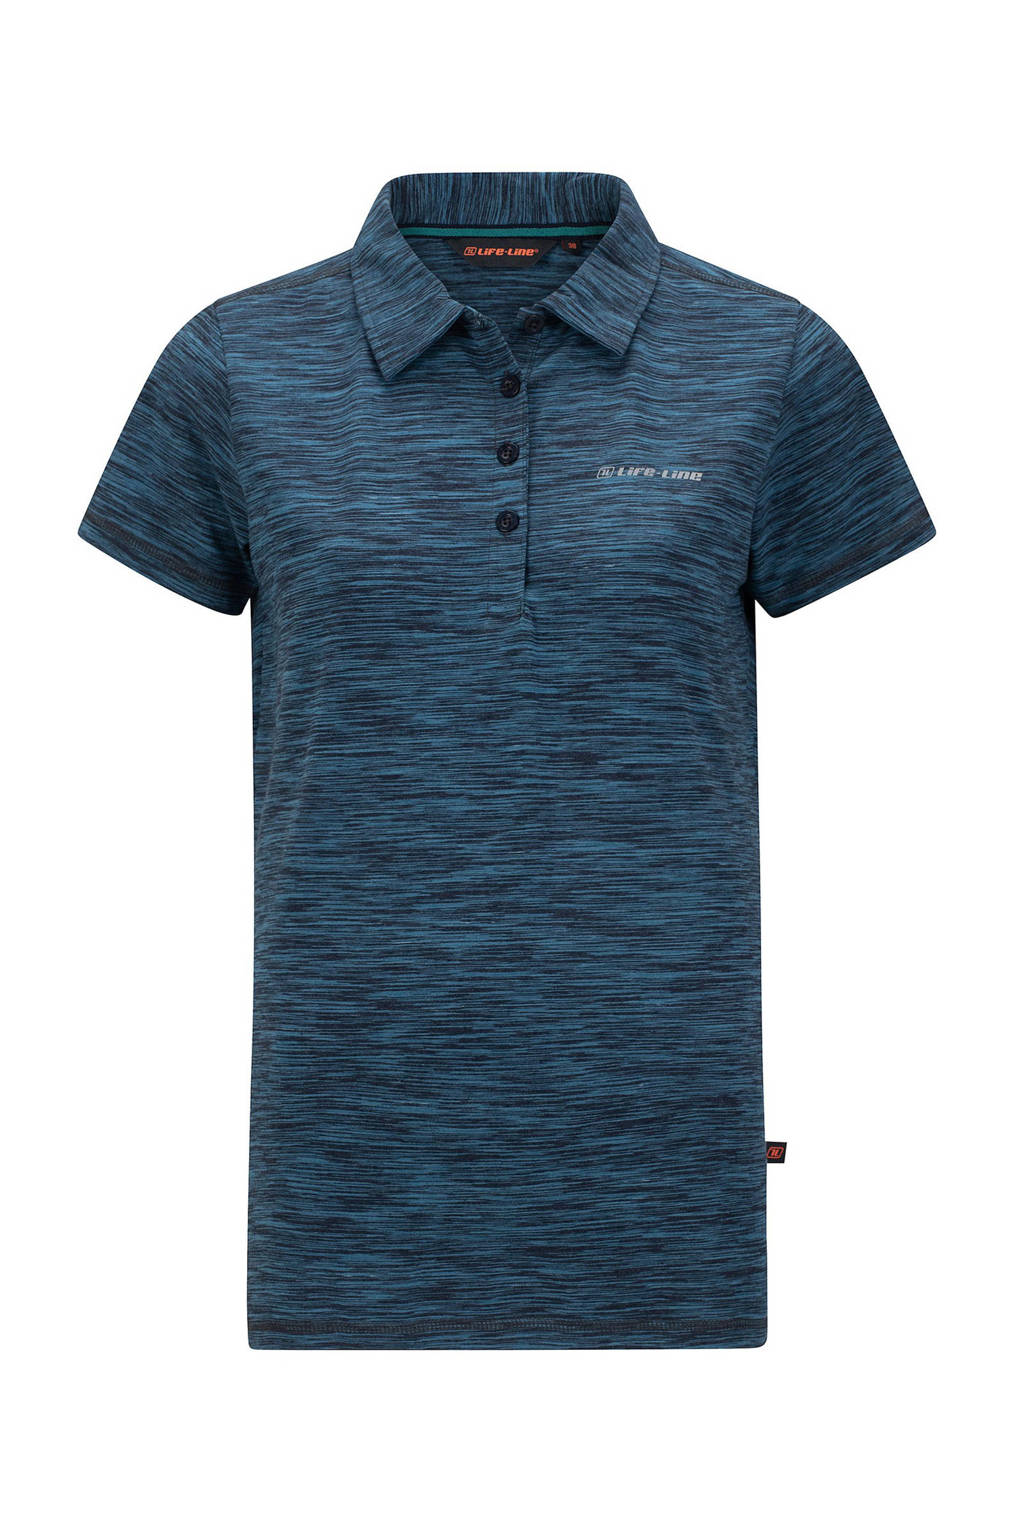 Life-Line outdoor polo Carliste donkerblauw melange, Donkerblauw melange